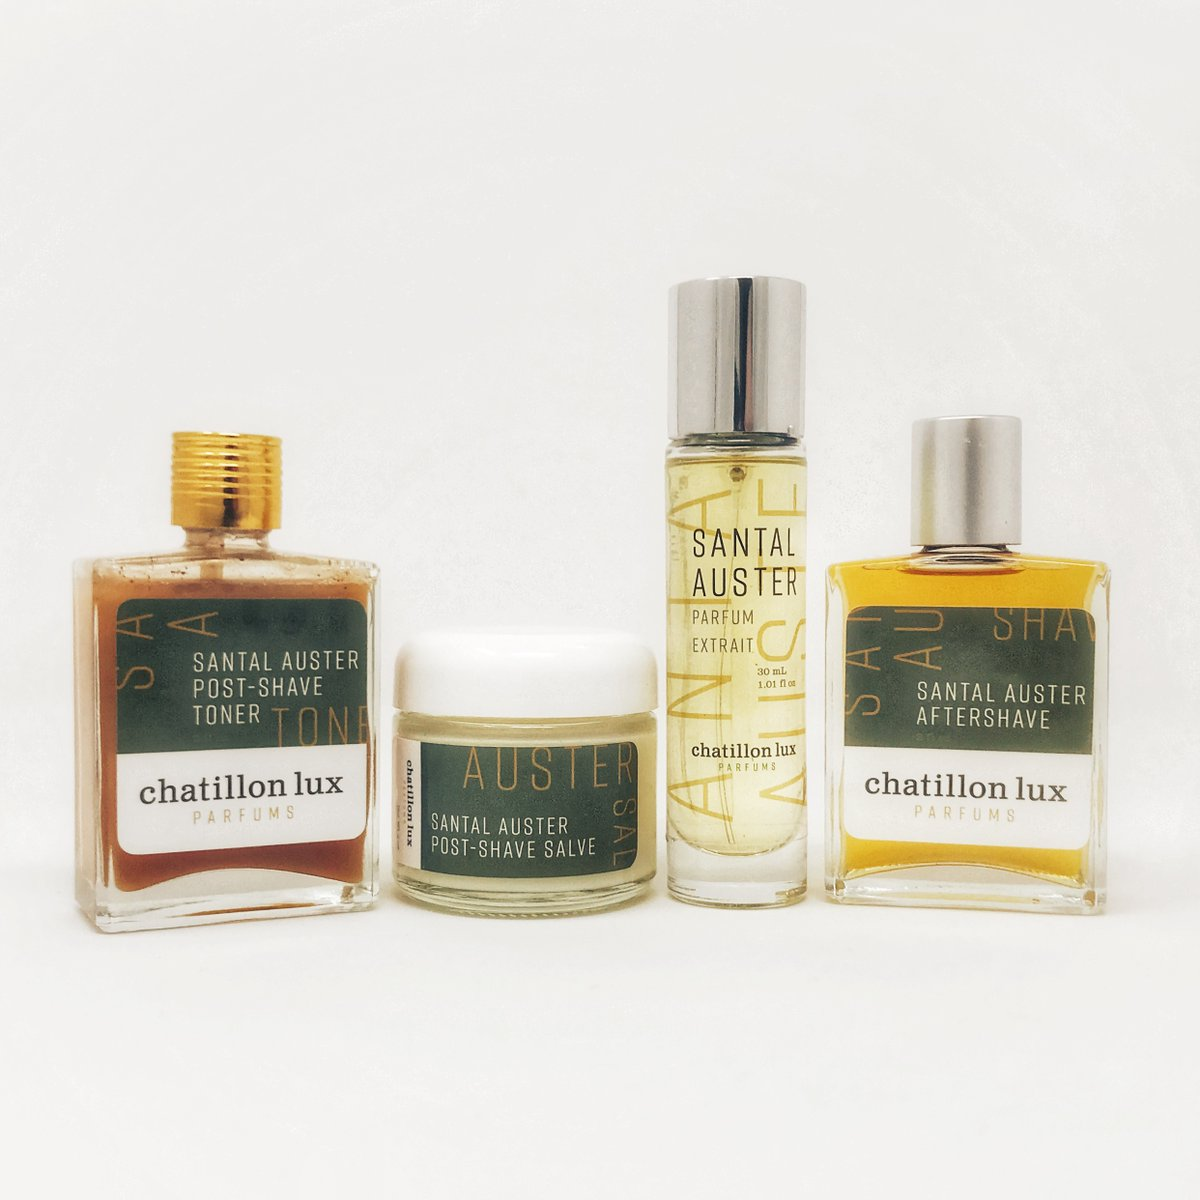 Chatillon Lux - Santal Auster